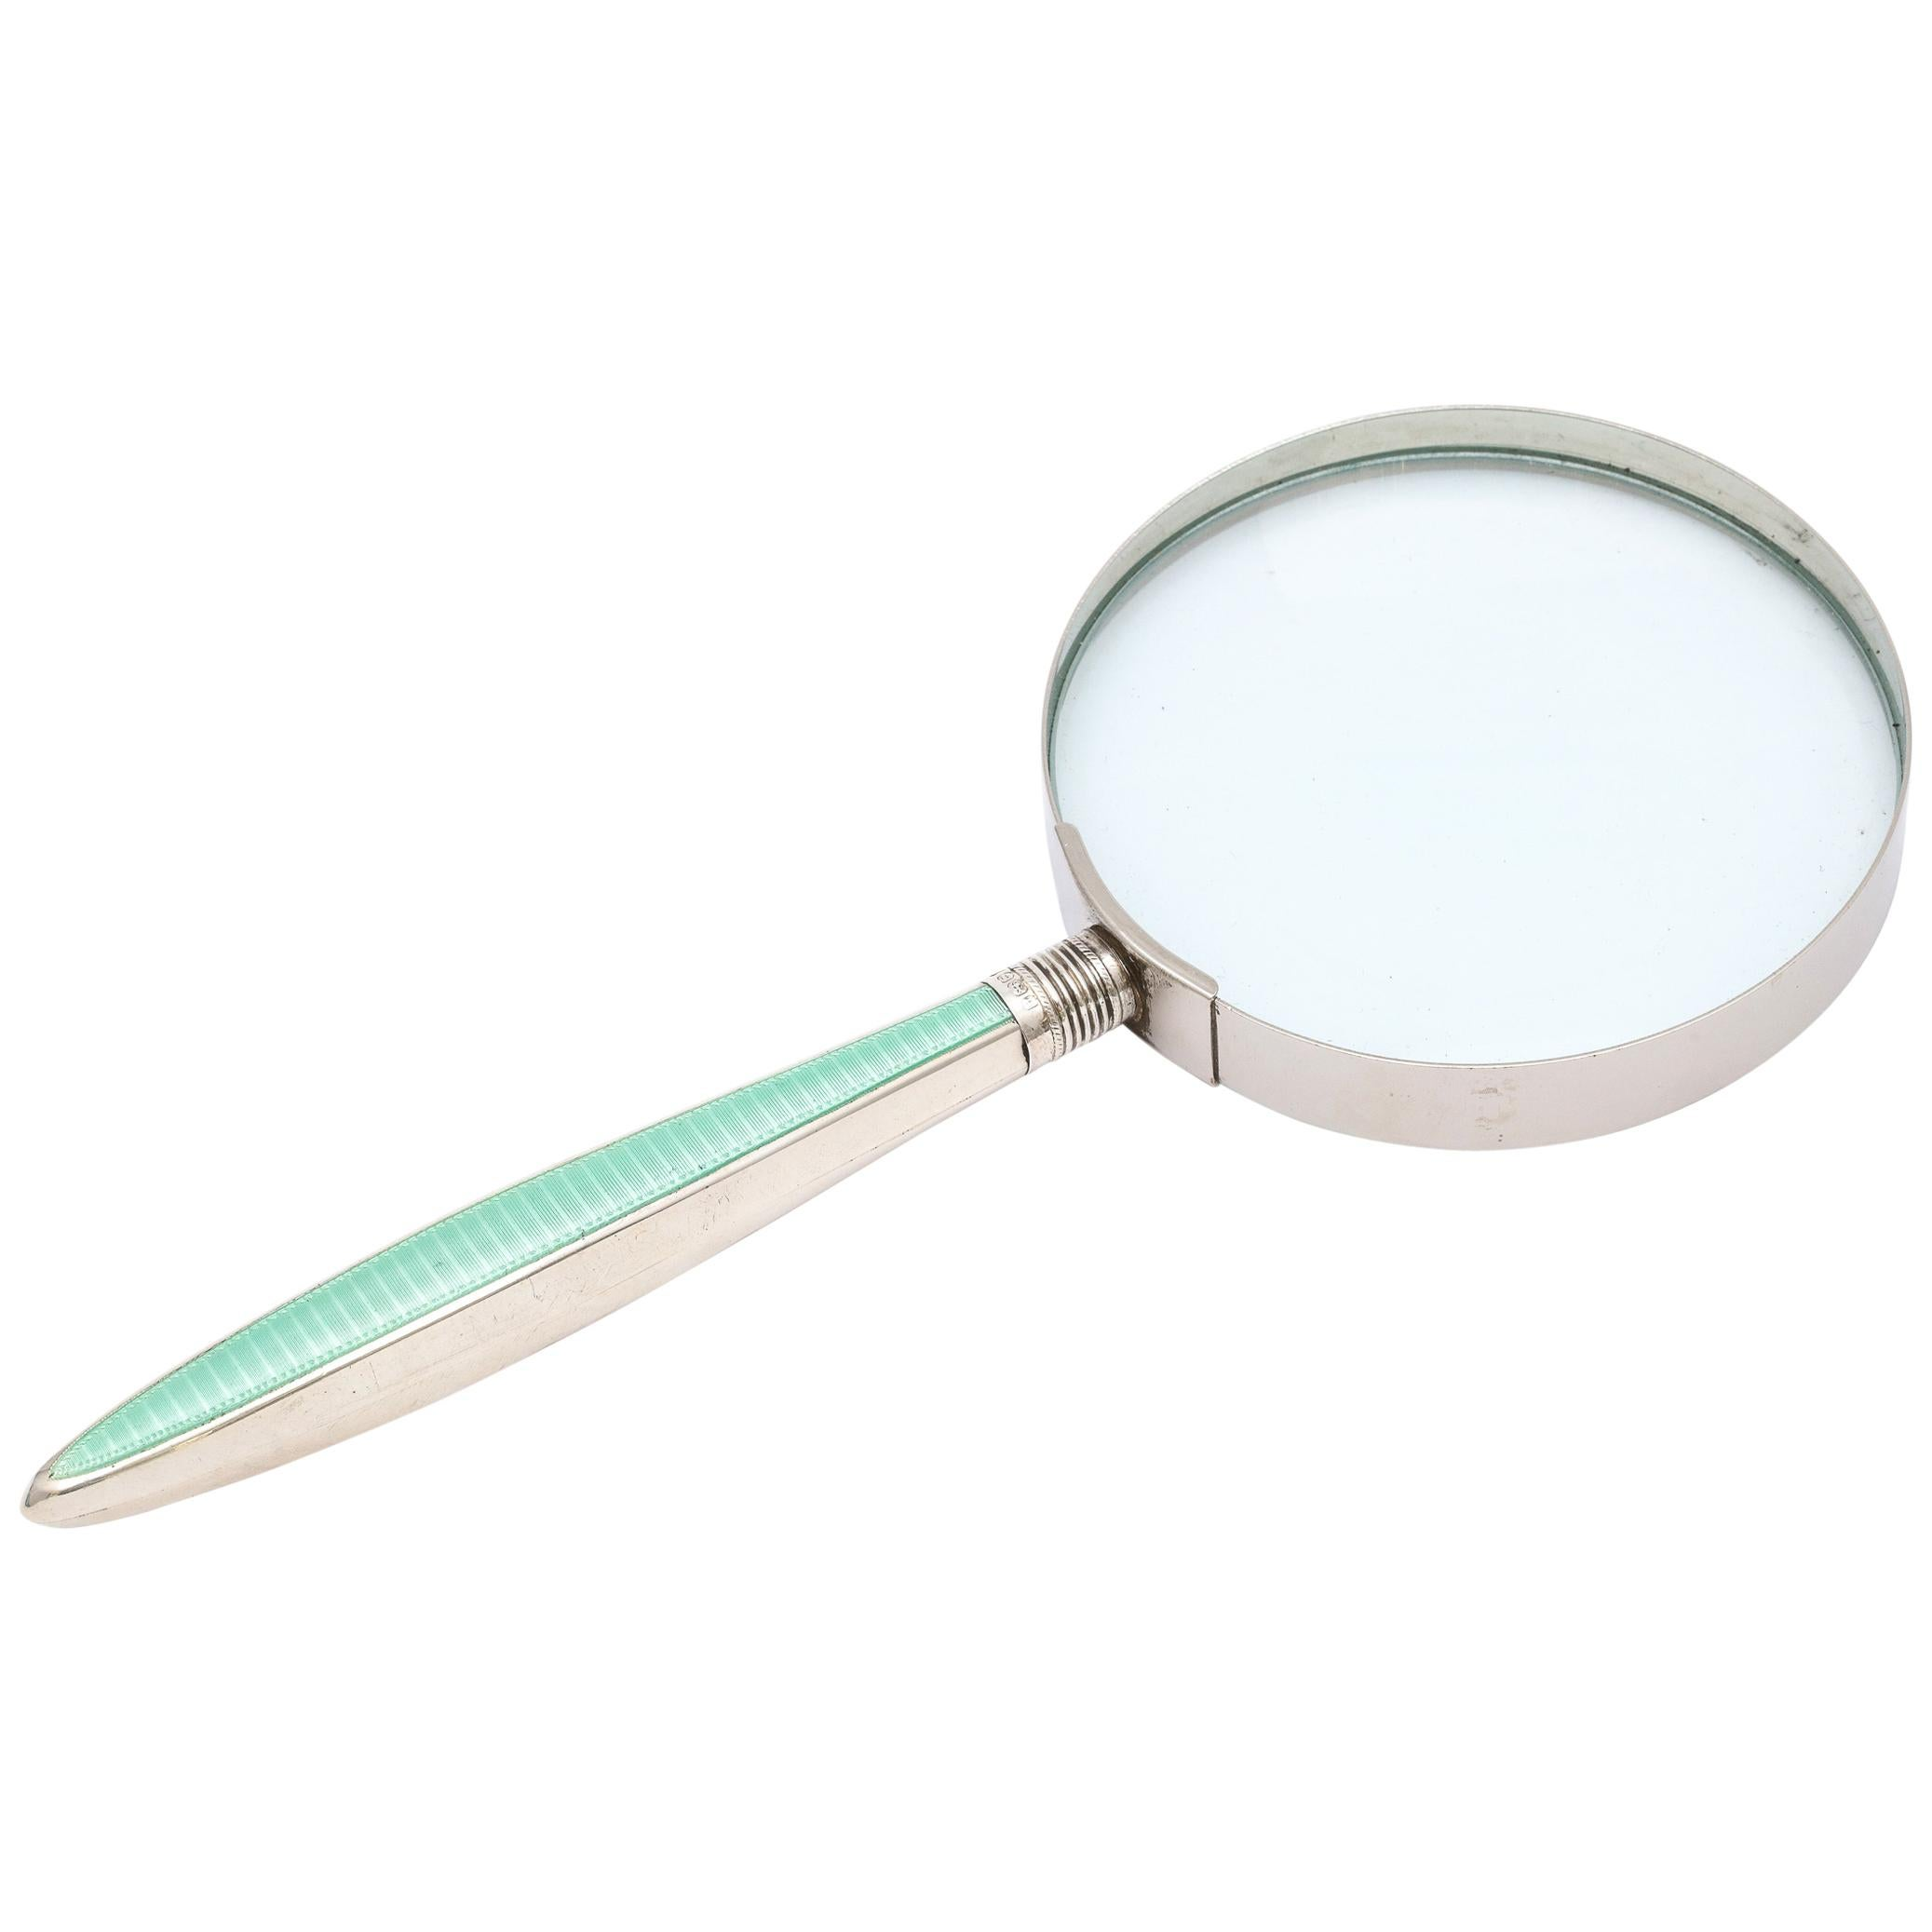 Edwardian Sterling Silver and Mint Green Enamel-Mounted Magnifying Glass